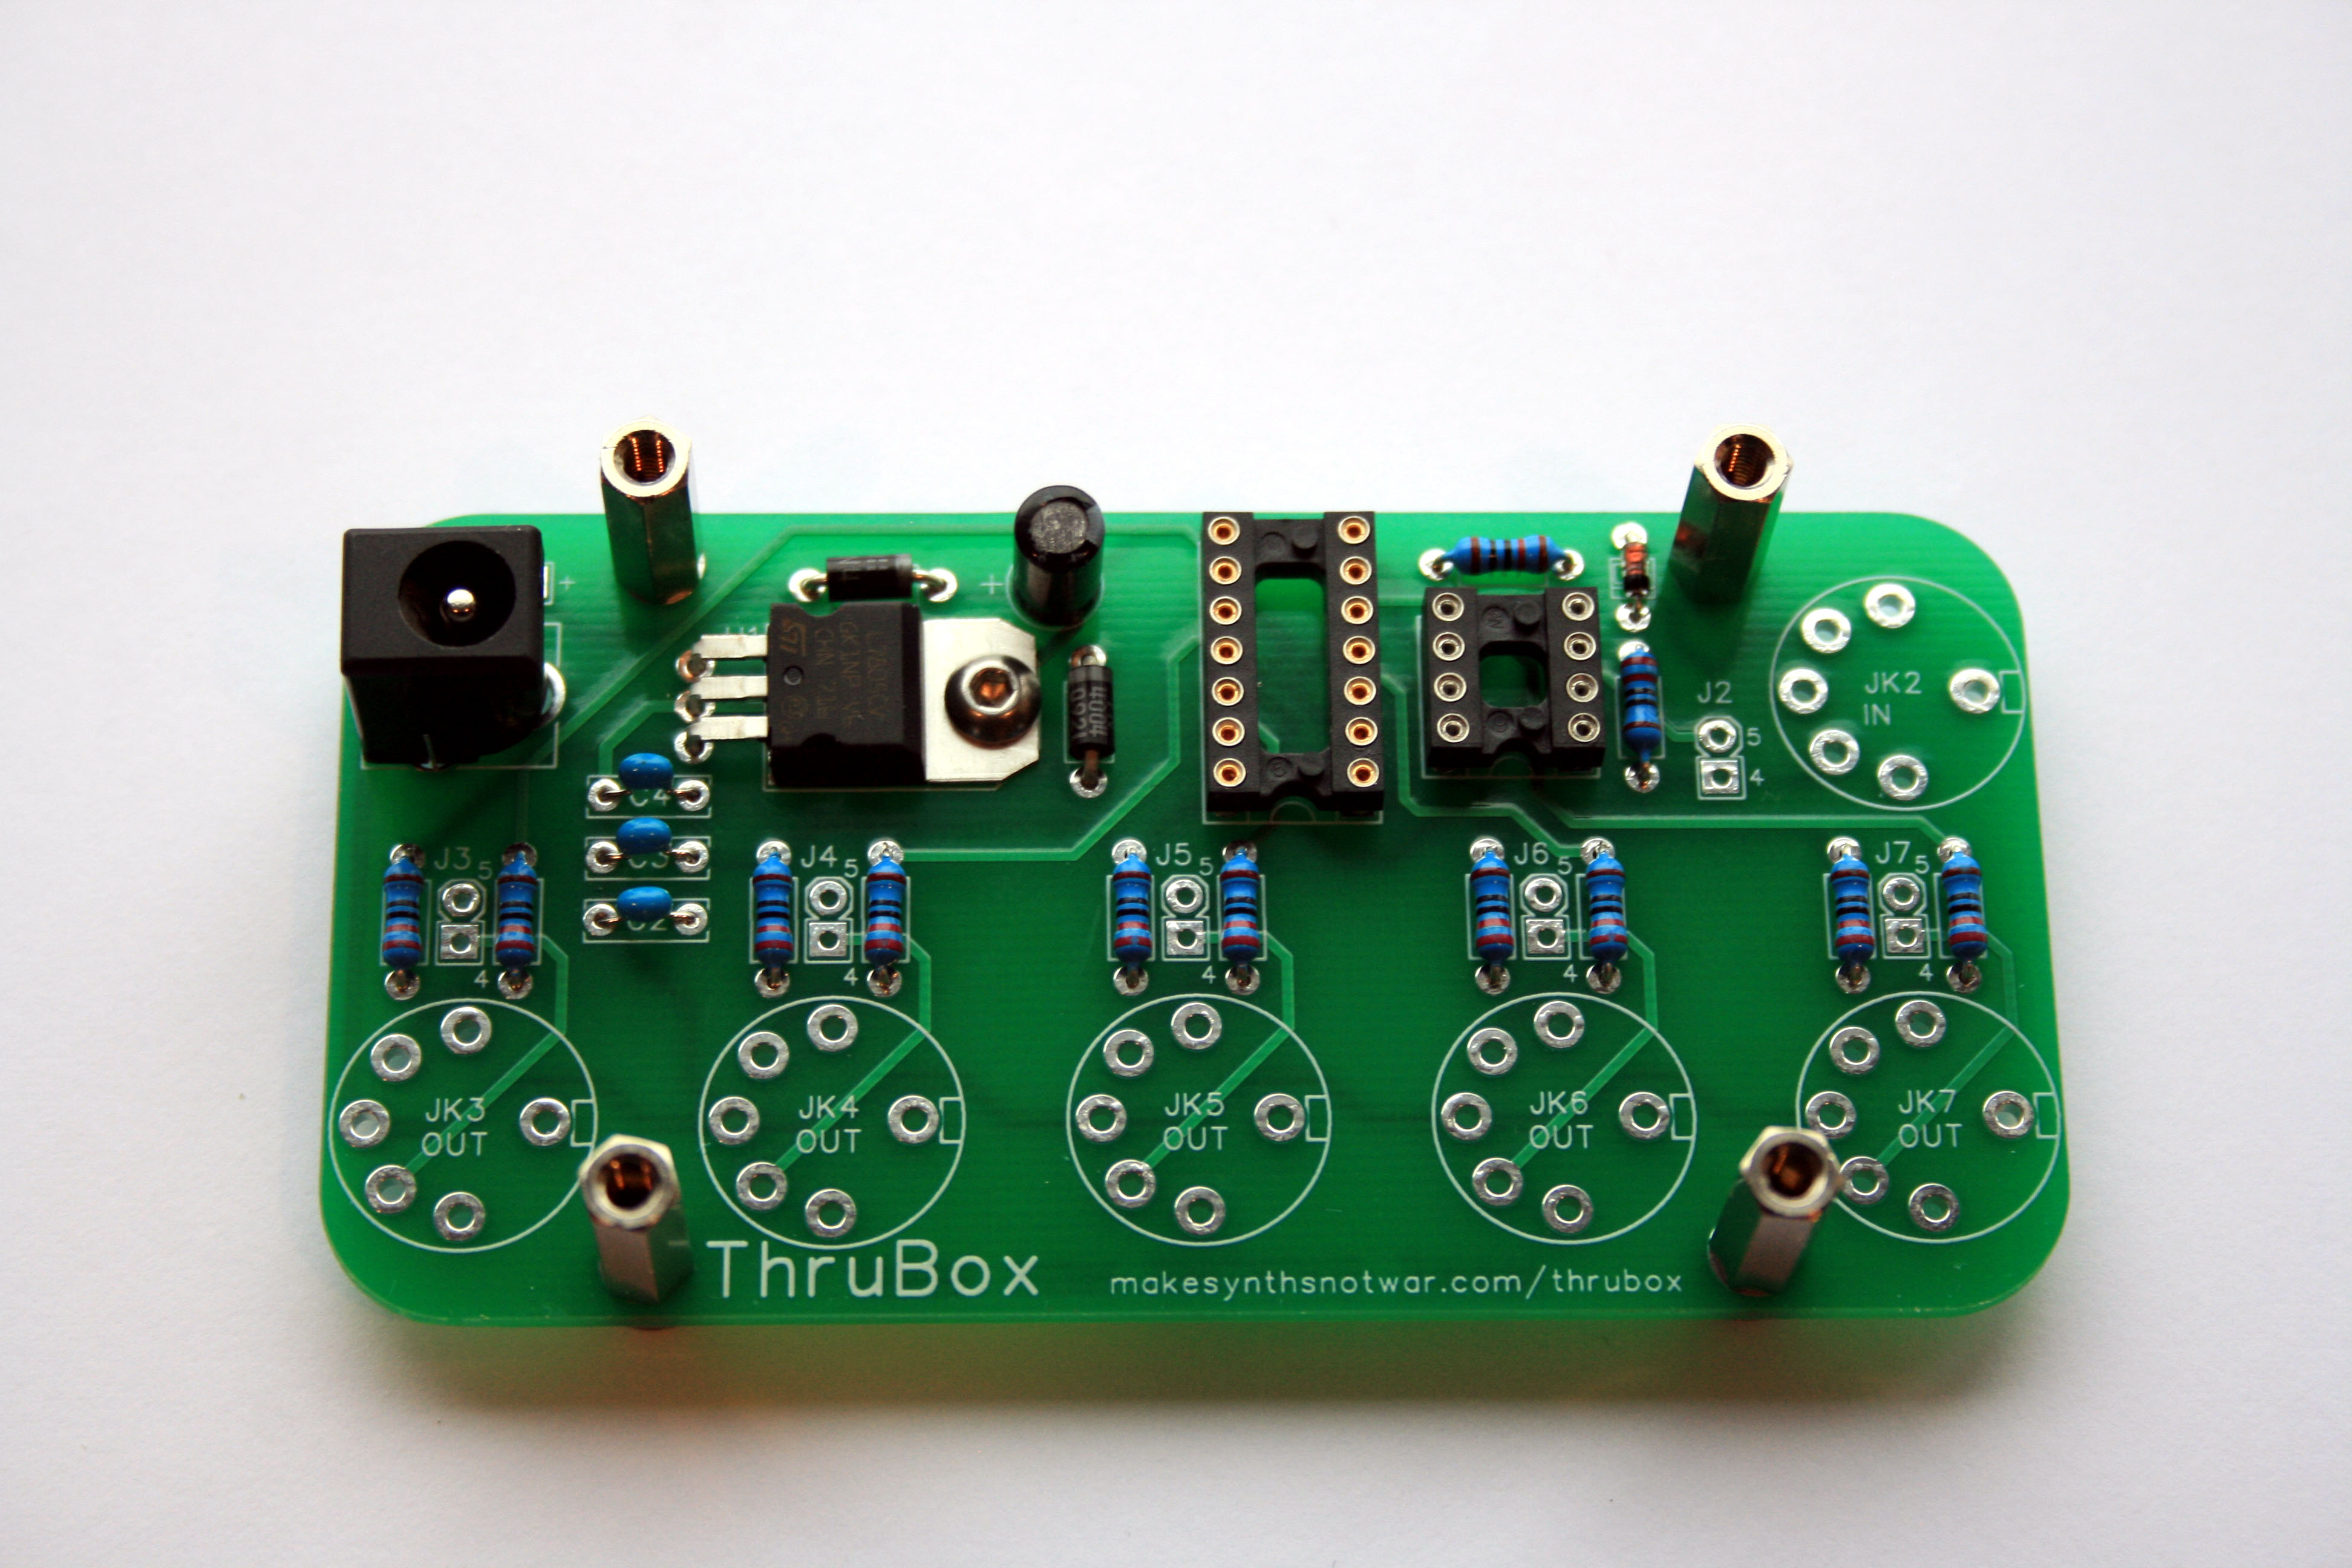 thrubox build instructions \u2013 make synths not warjk1 will only fit one way \u2013 note how the pin arrangement is \u201ckeyed\u201d don\u0027t be tempted to solder it into place immediately, though \u2013 we have to ensure it